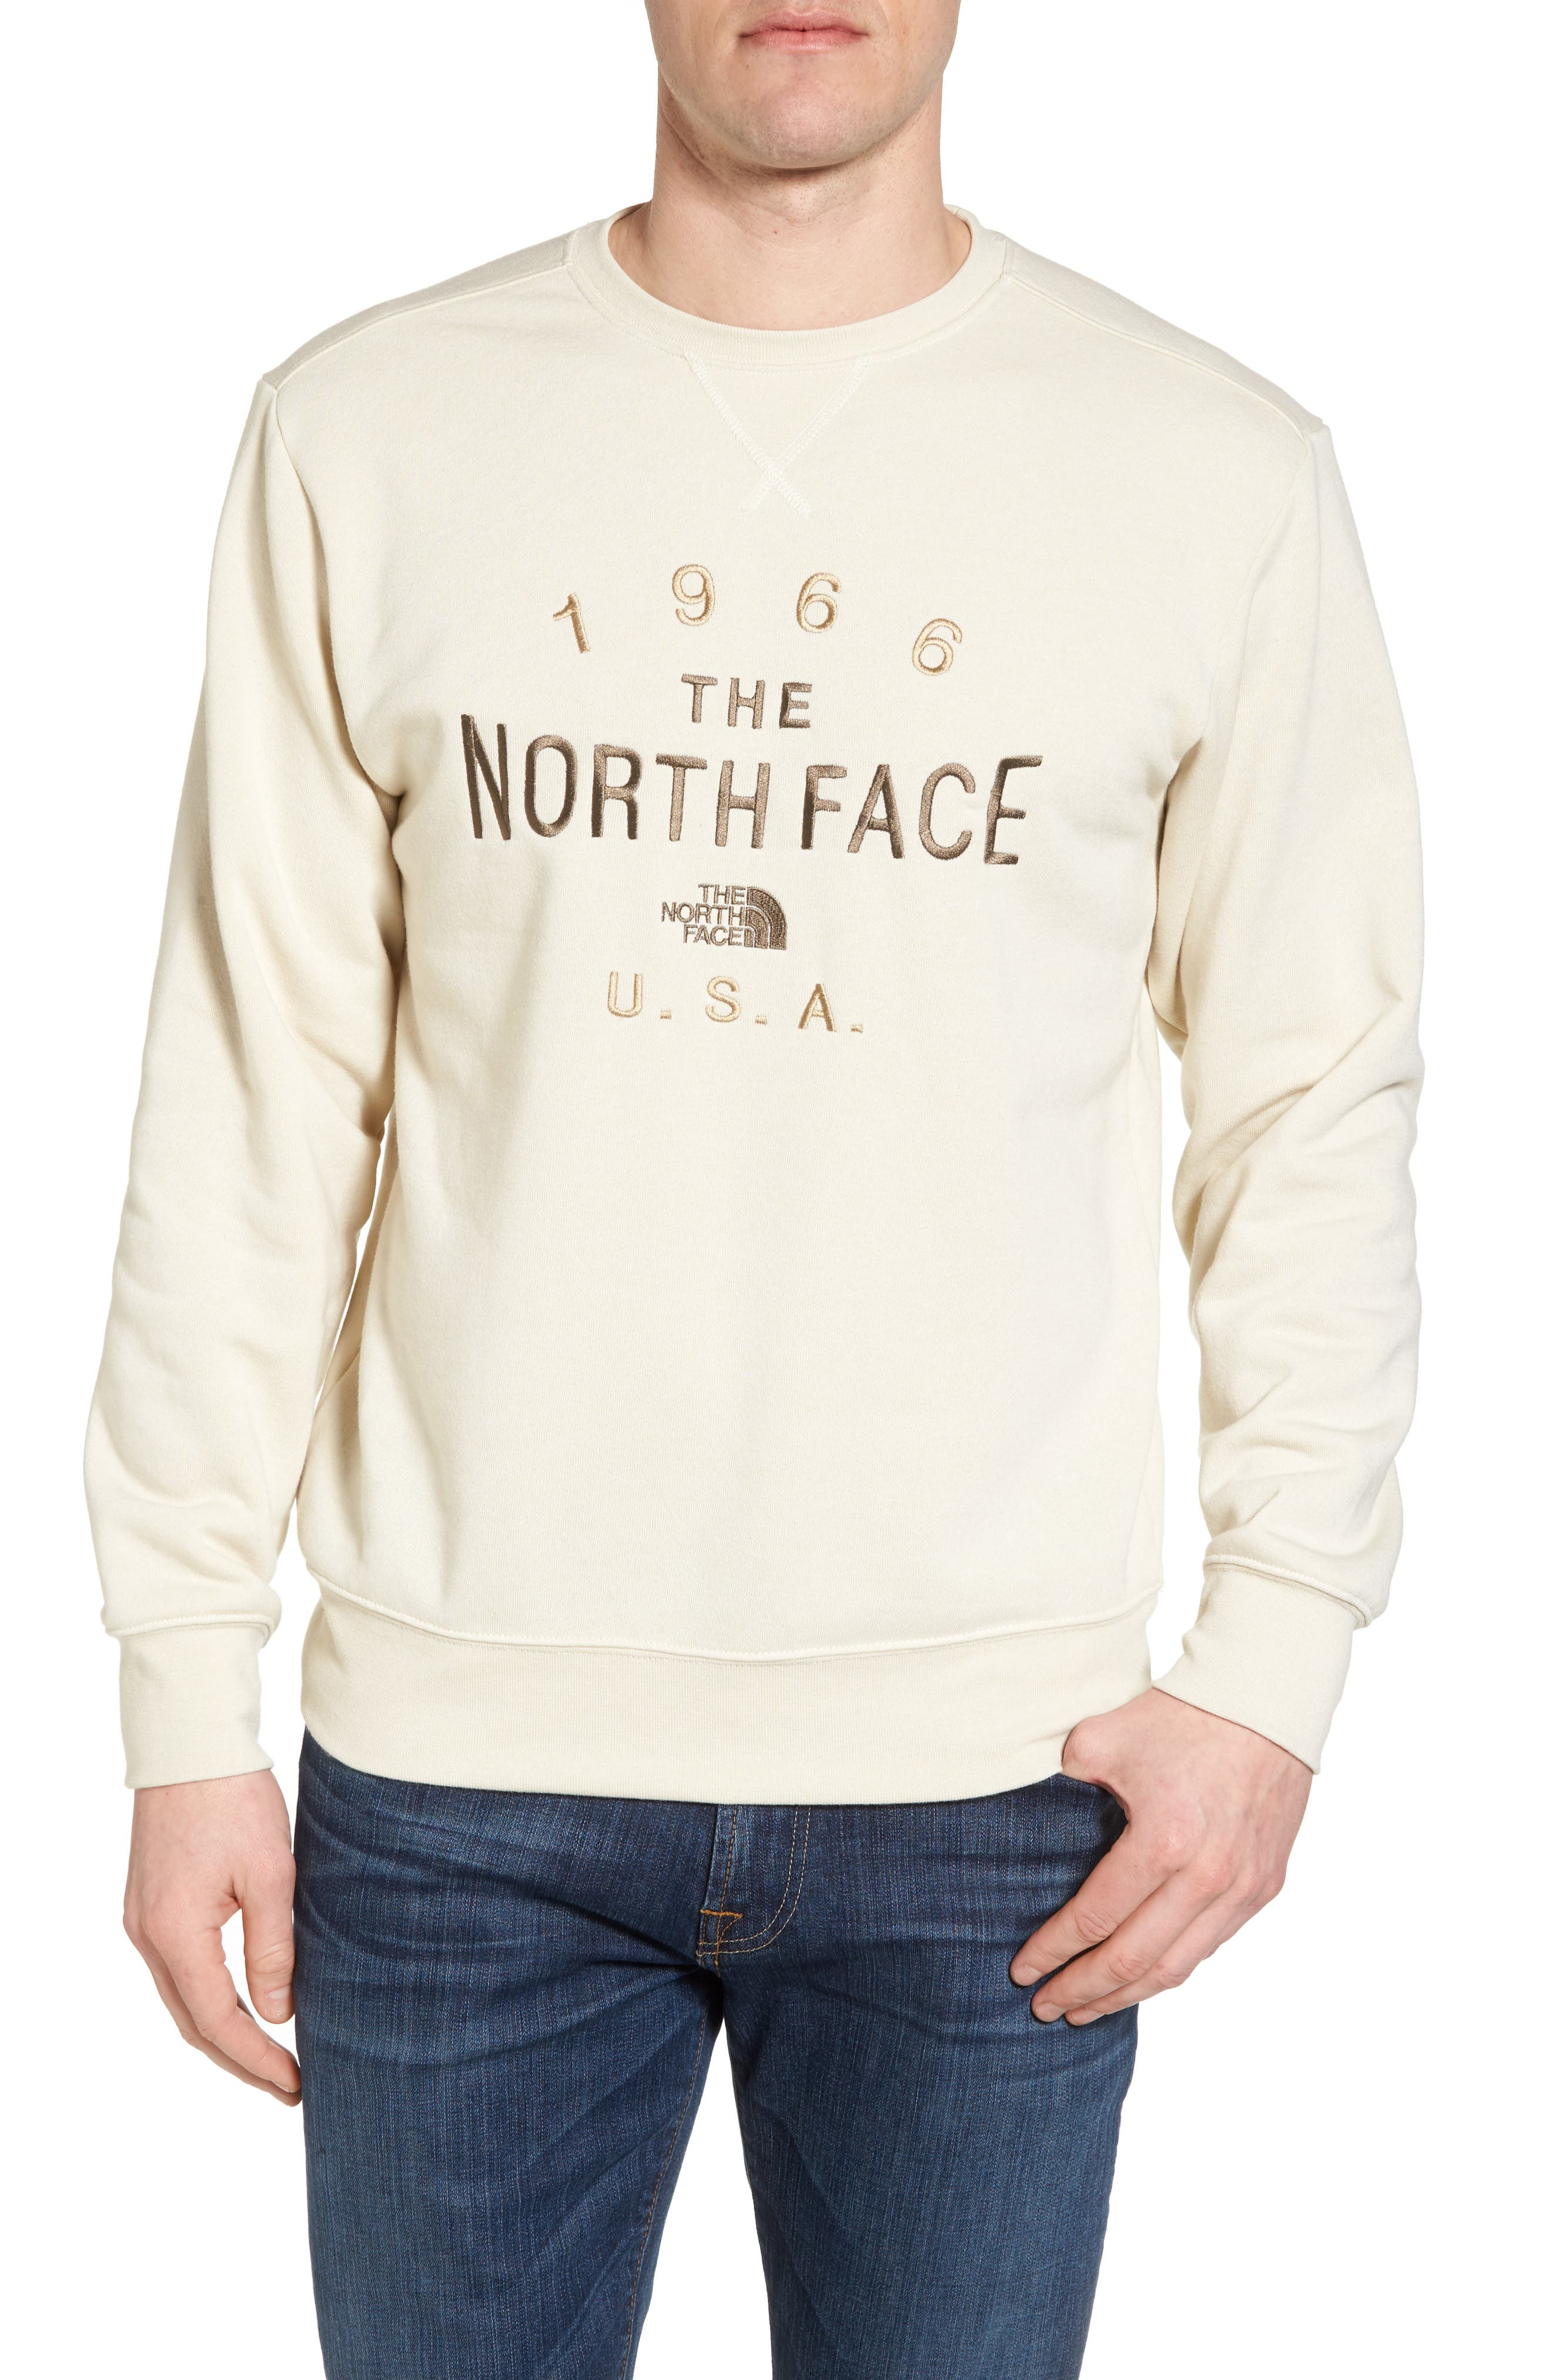 The North Face Edge To Edge Sweatshirt